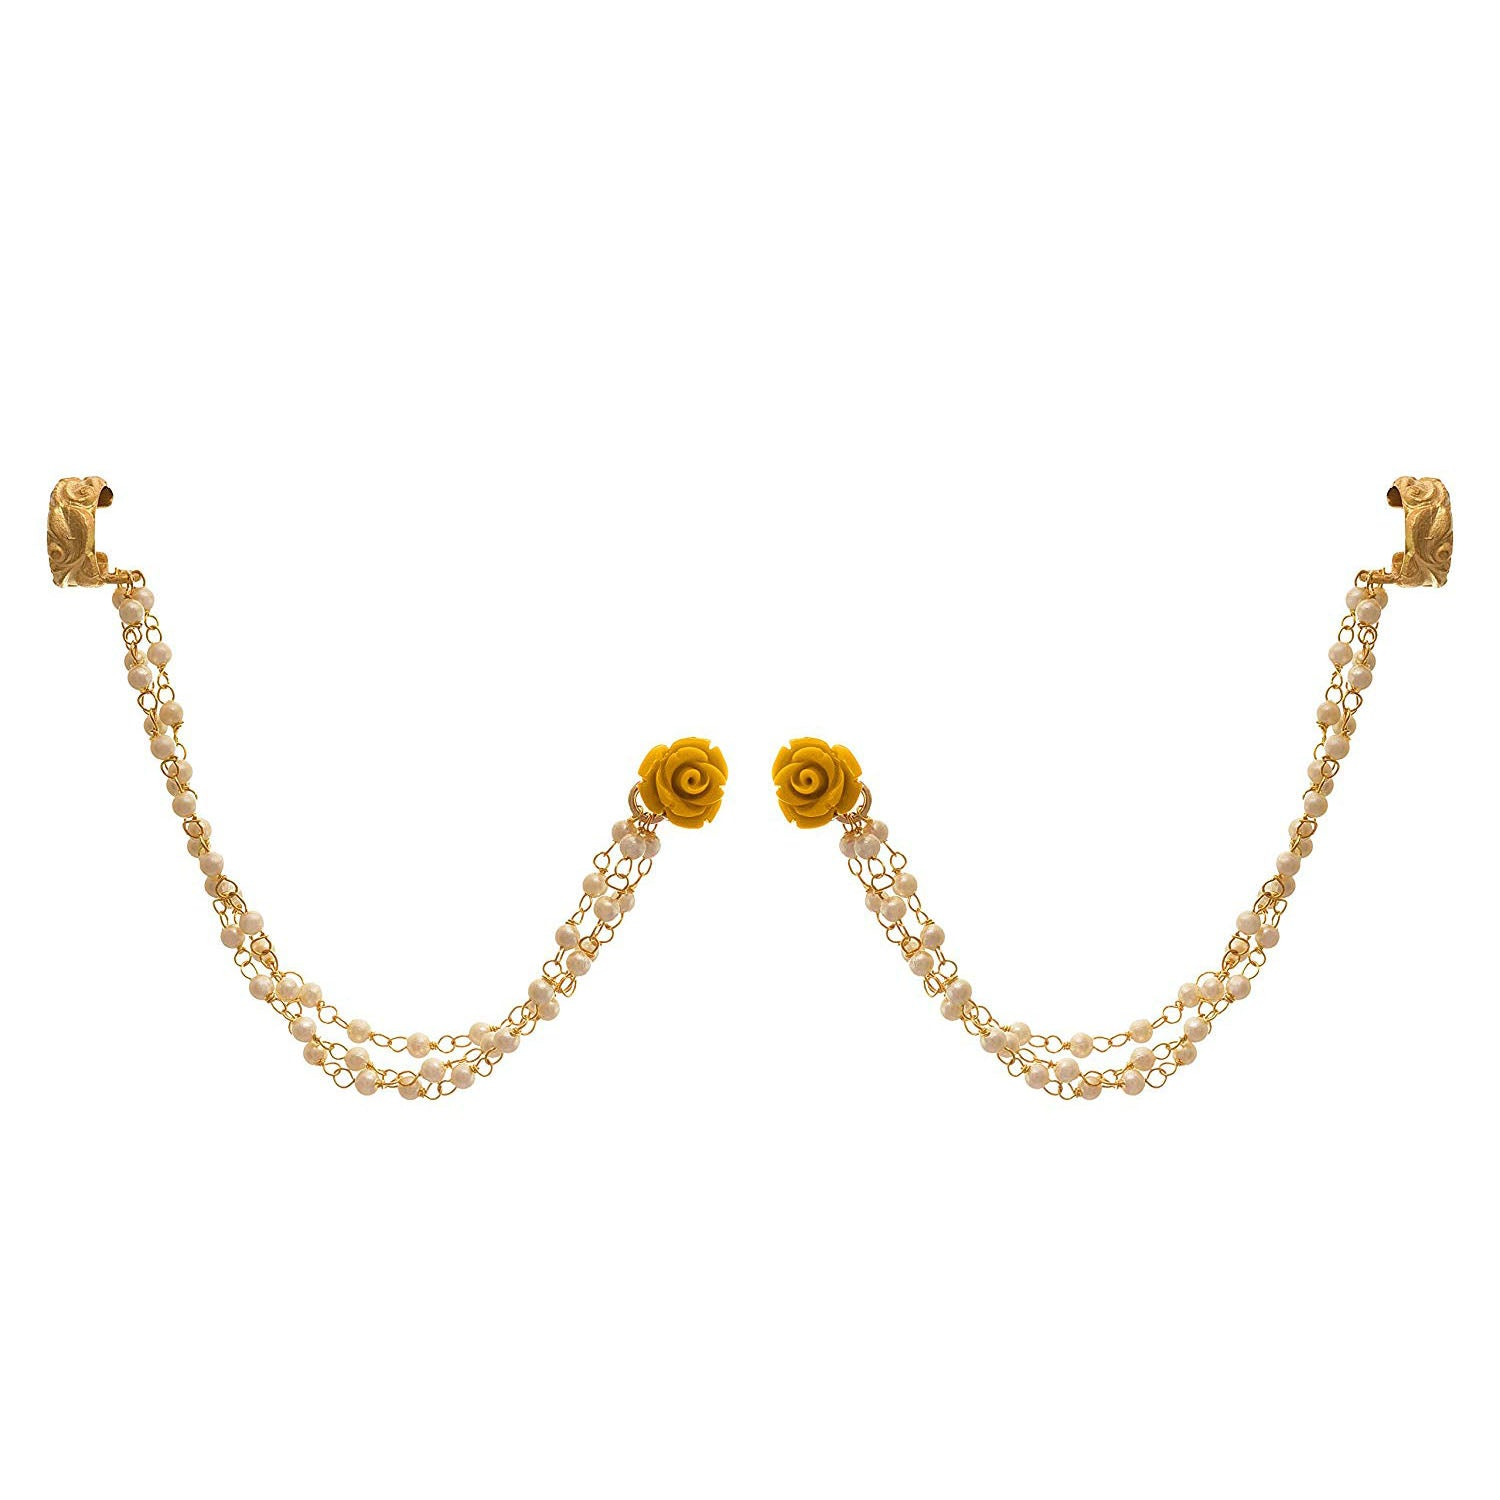 Jewellery for Less Traditional Ethnic One Gram Gold Plated Pearl & Floral Designer Earcuff Earring for Women & Girls (Yellow)